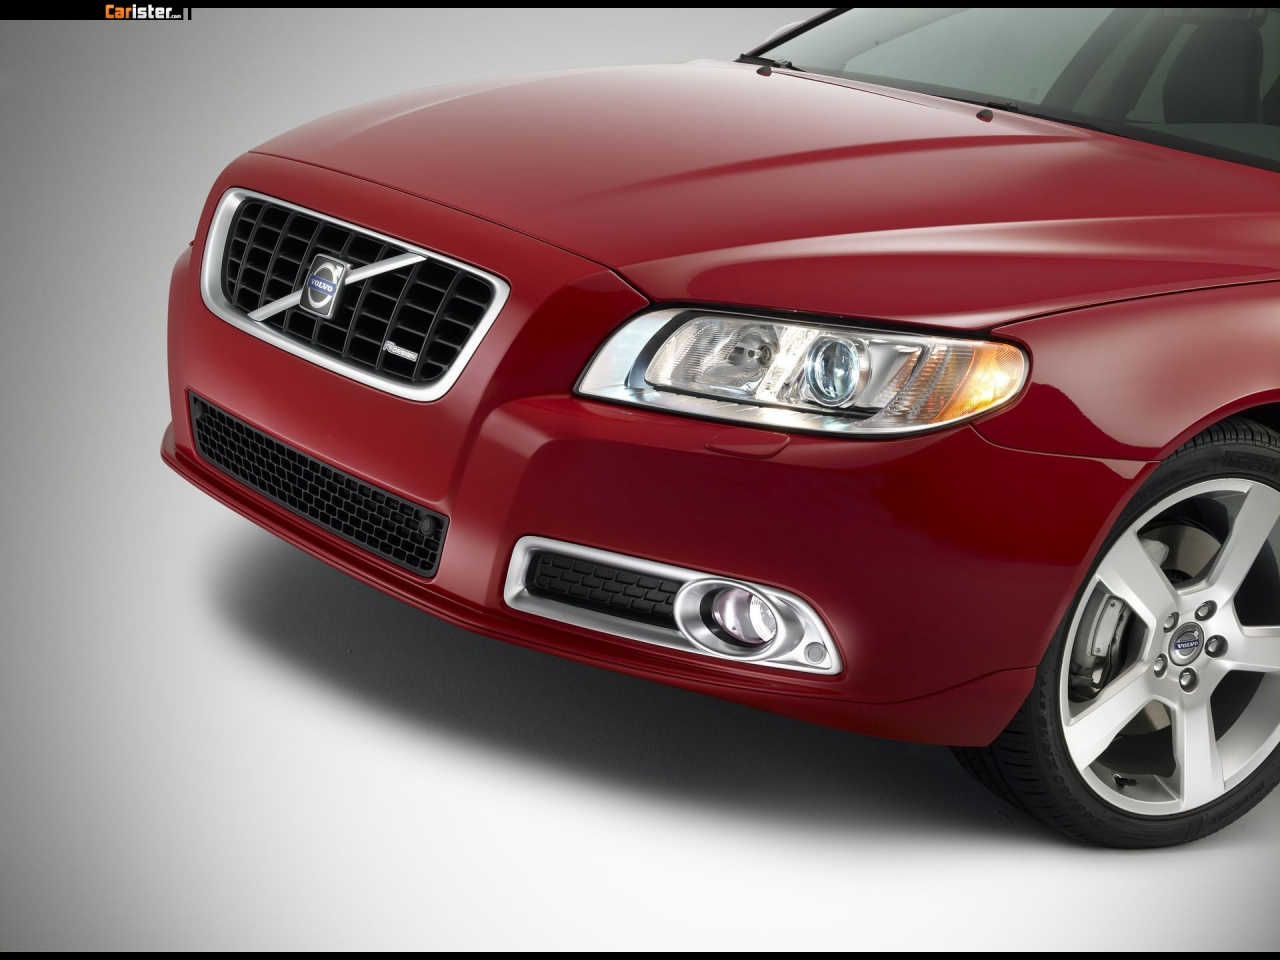 Volvo V70 R-Design 2008 - Photo 03 - Taille: 1280x960